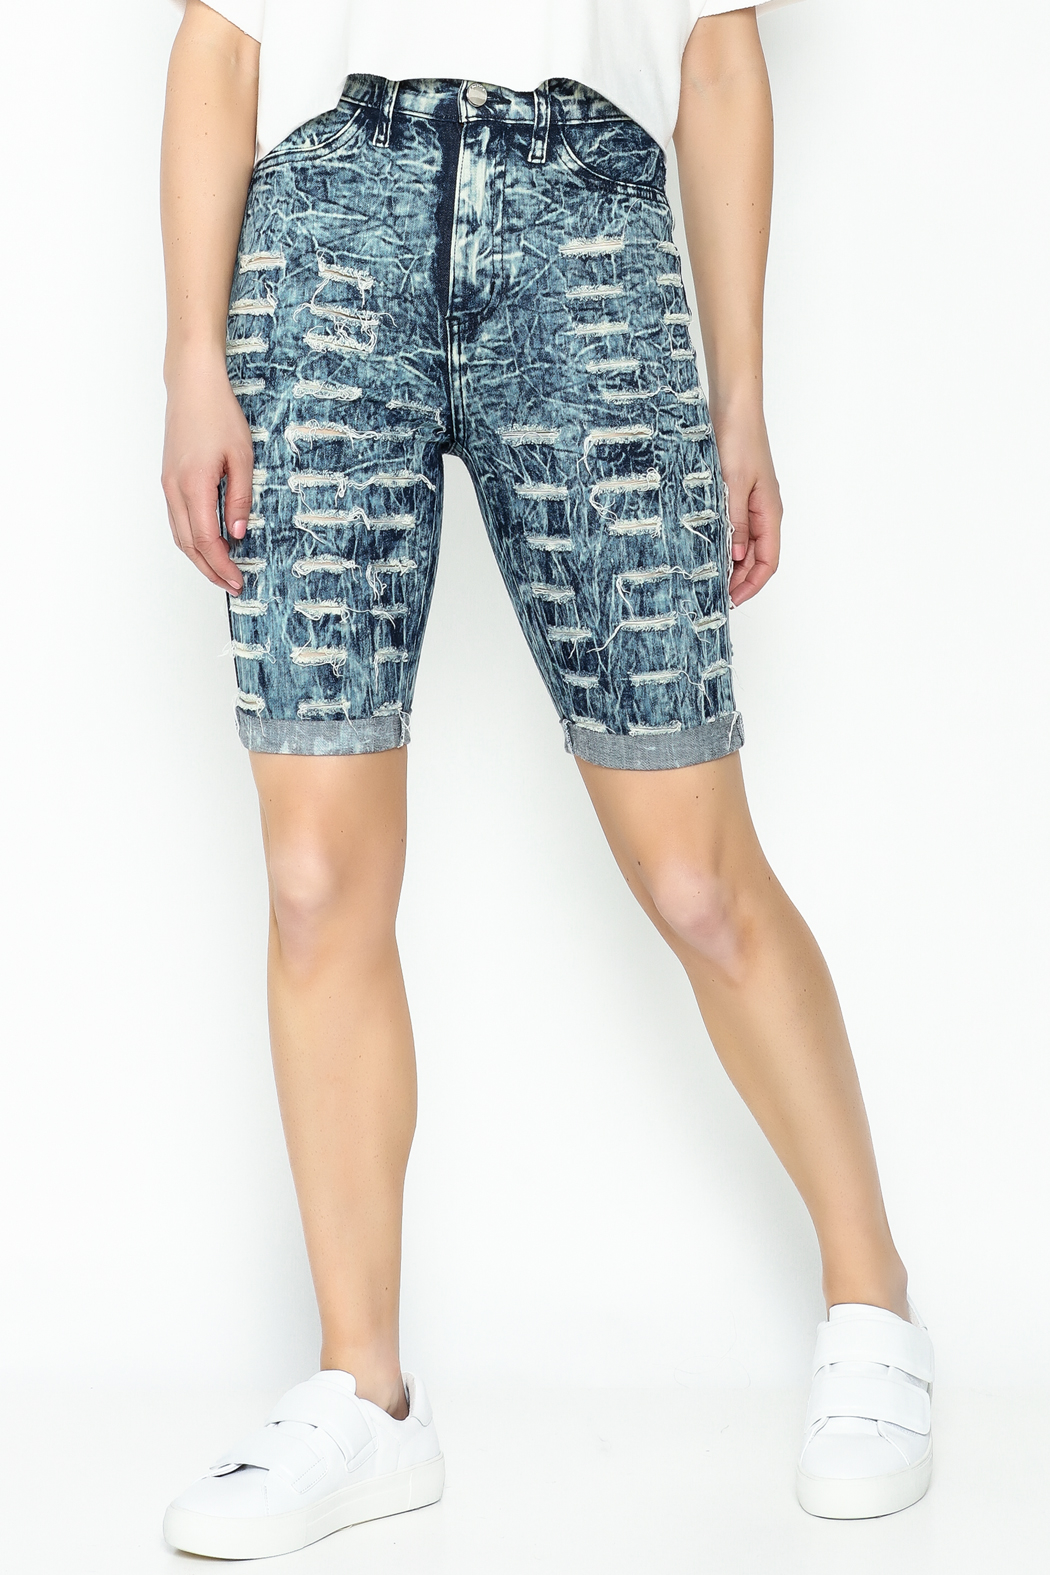 Aphrodite High Waist Distressed Shorts - Main Image